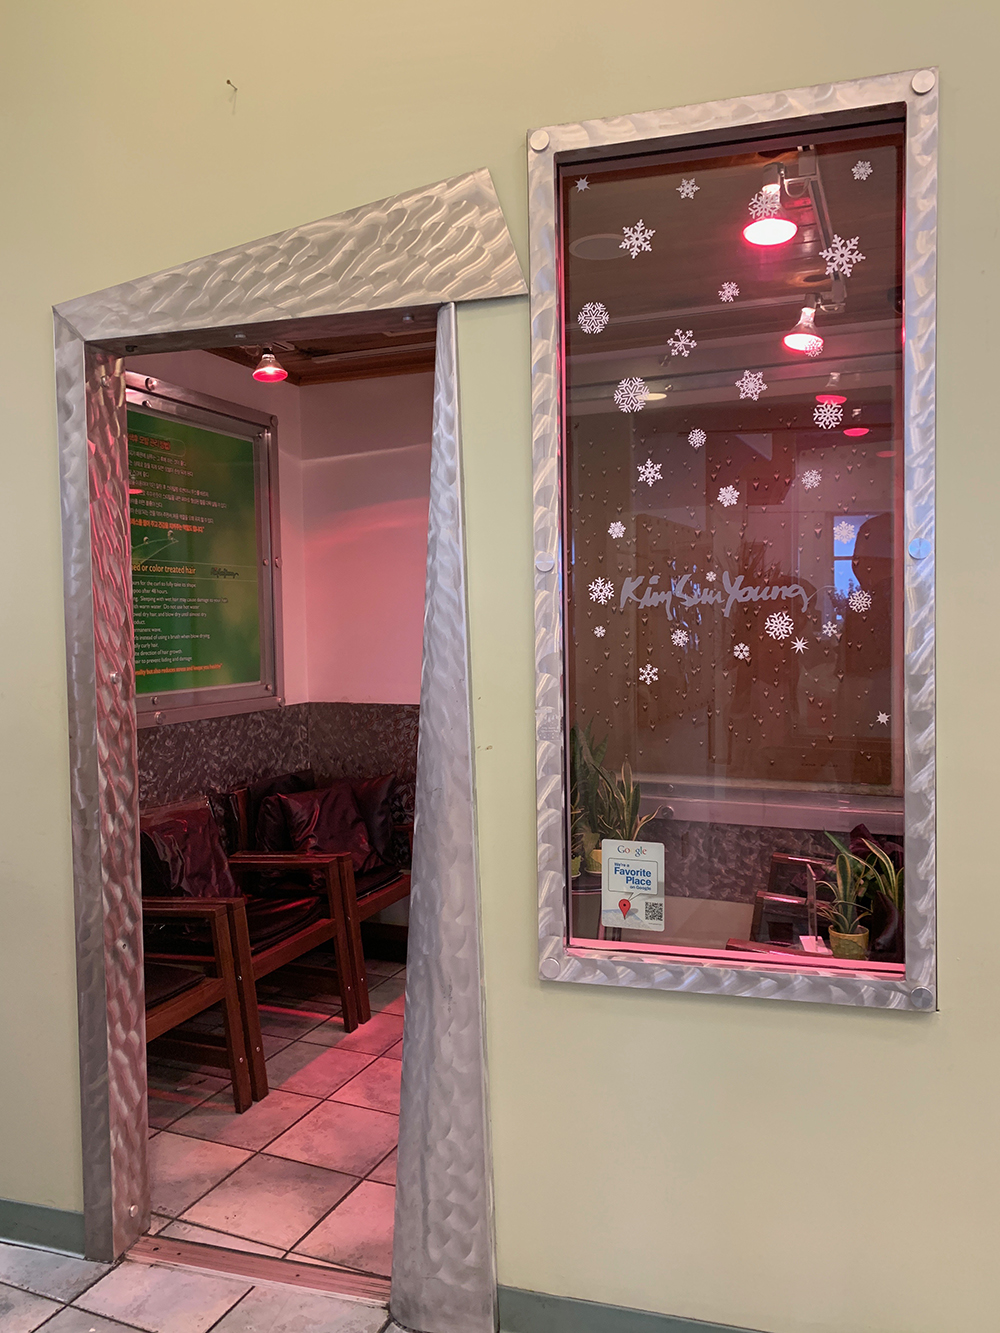 The salon has a relaxation area with special lamps that allow hair treatments to better absorb.